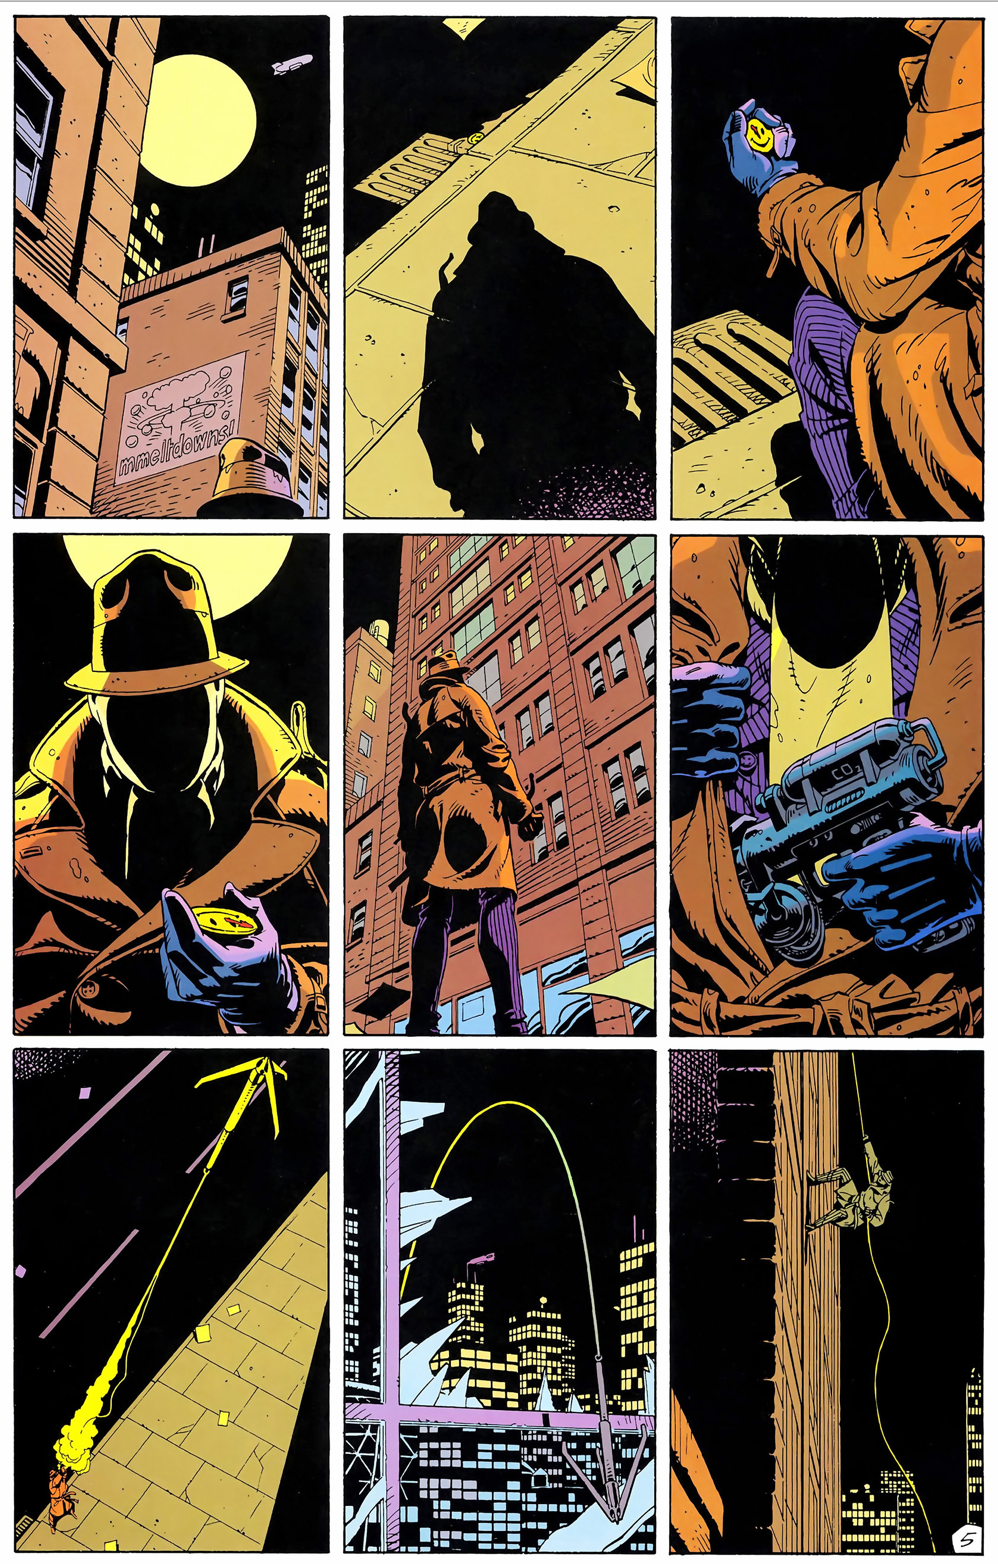 A page from Watchmen showing Rorshach picking up The Comedian's blood spattered button and then using a grappling gun to scale an apartment building.